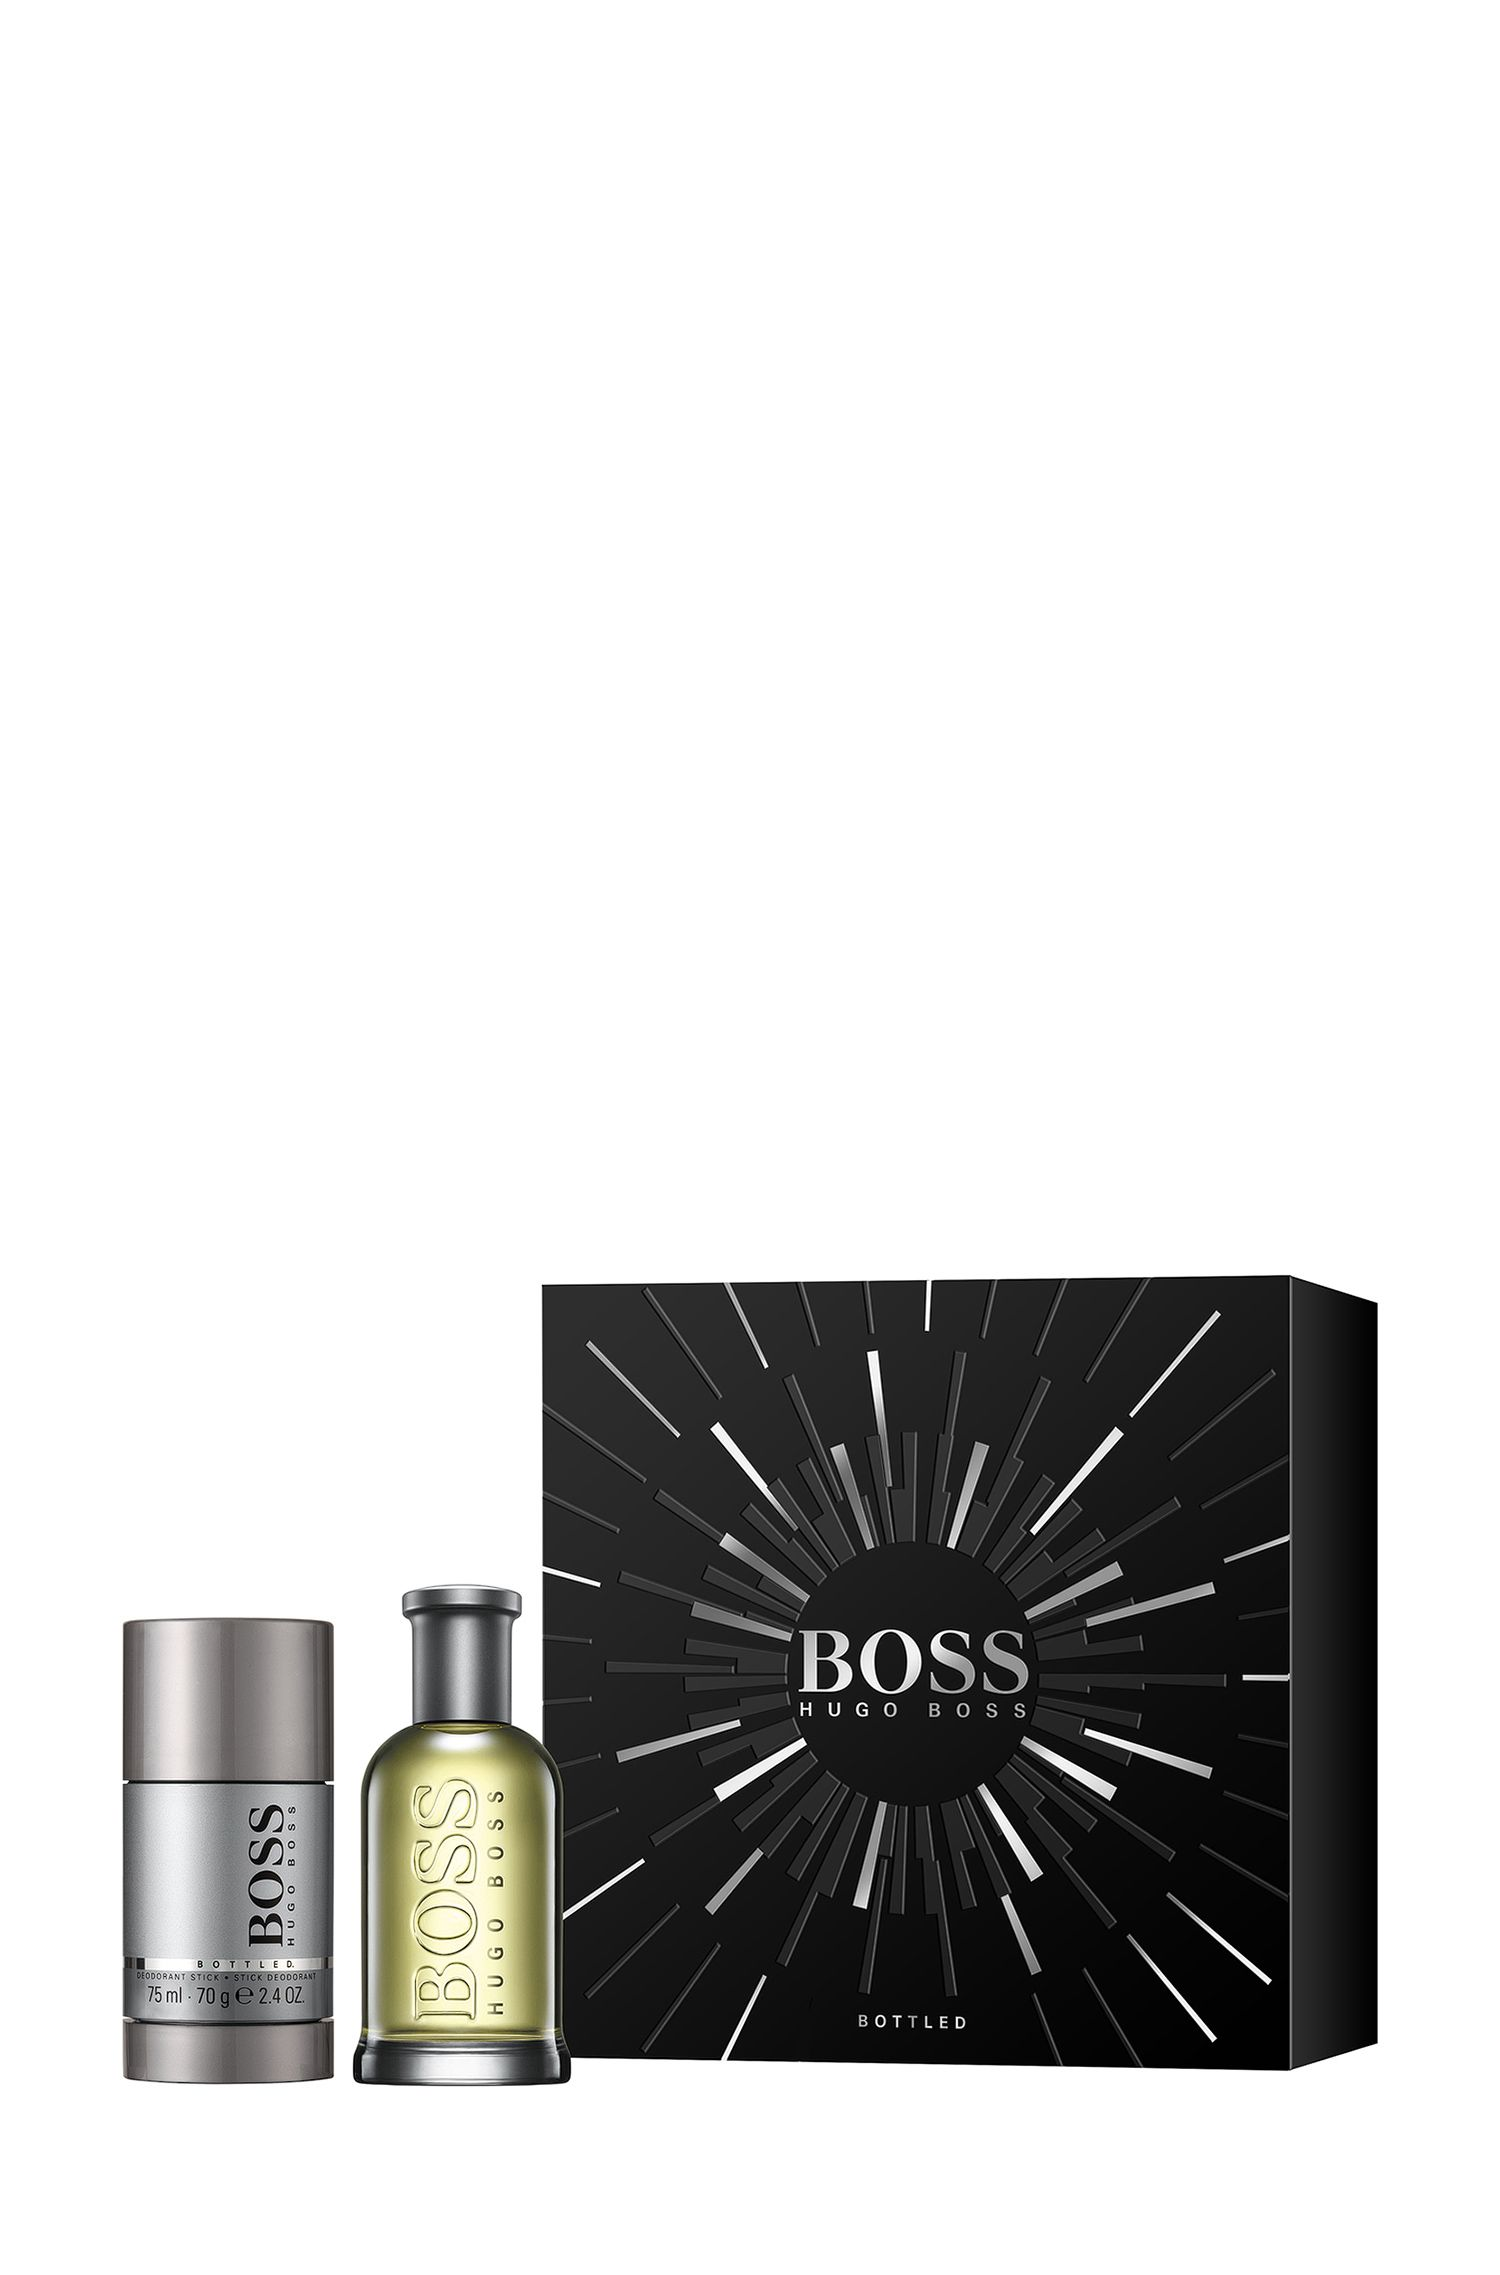 BOSS Bottled fragrance and deodorant gift set, Assorted-Pre-Pack